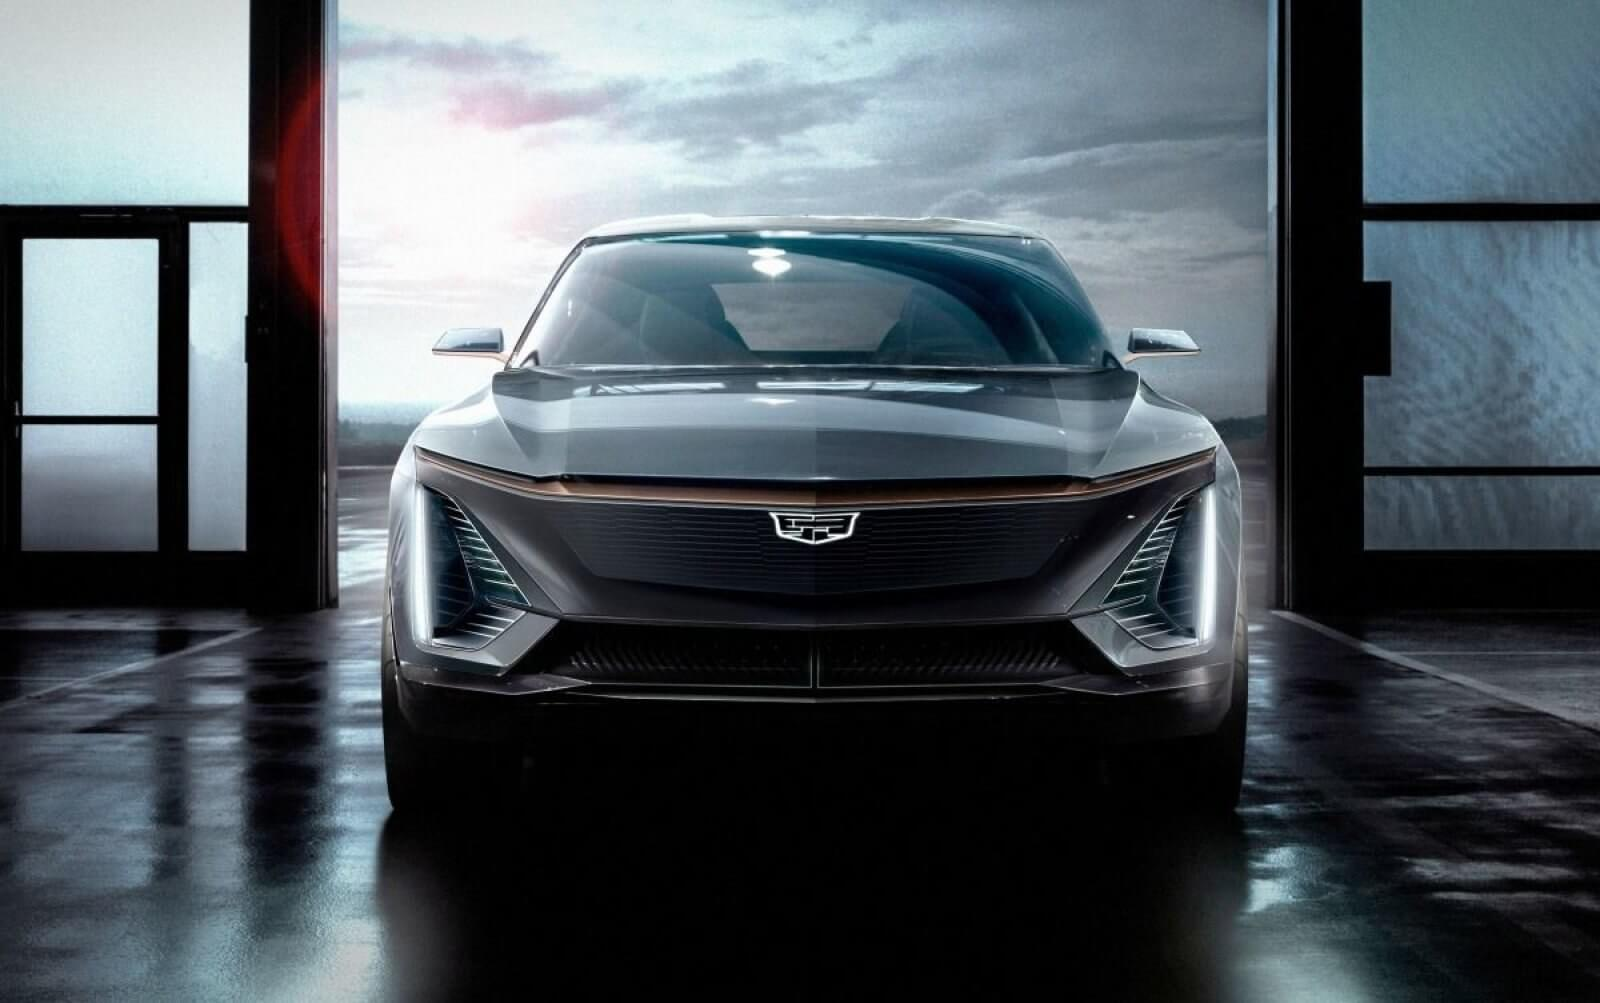 Most of Cadillac's vehicles will be fully-electric by 2030